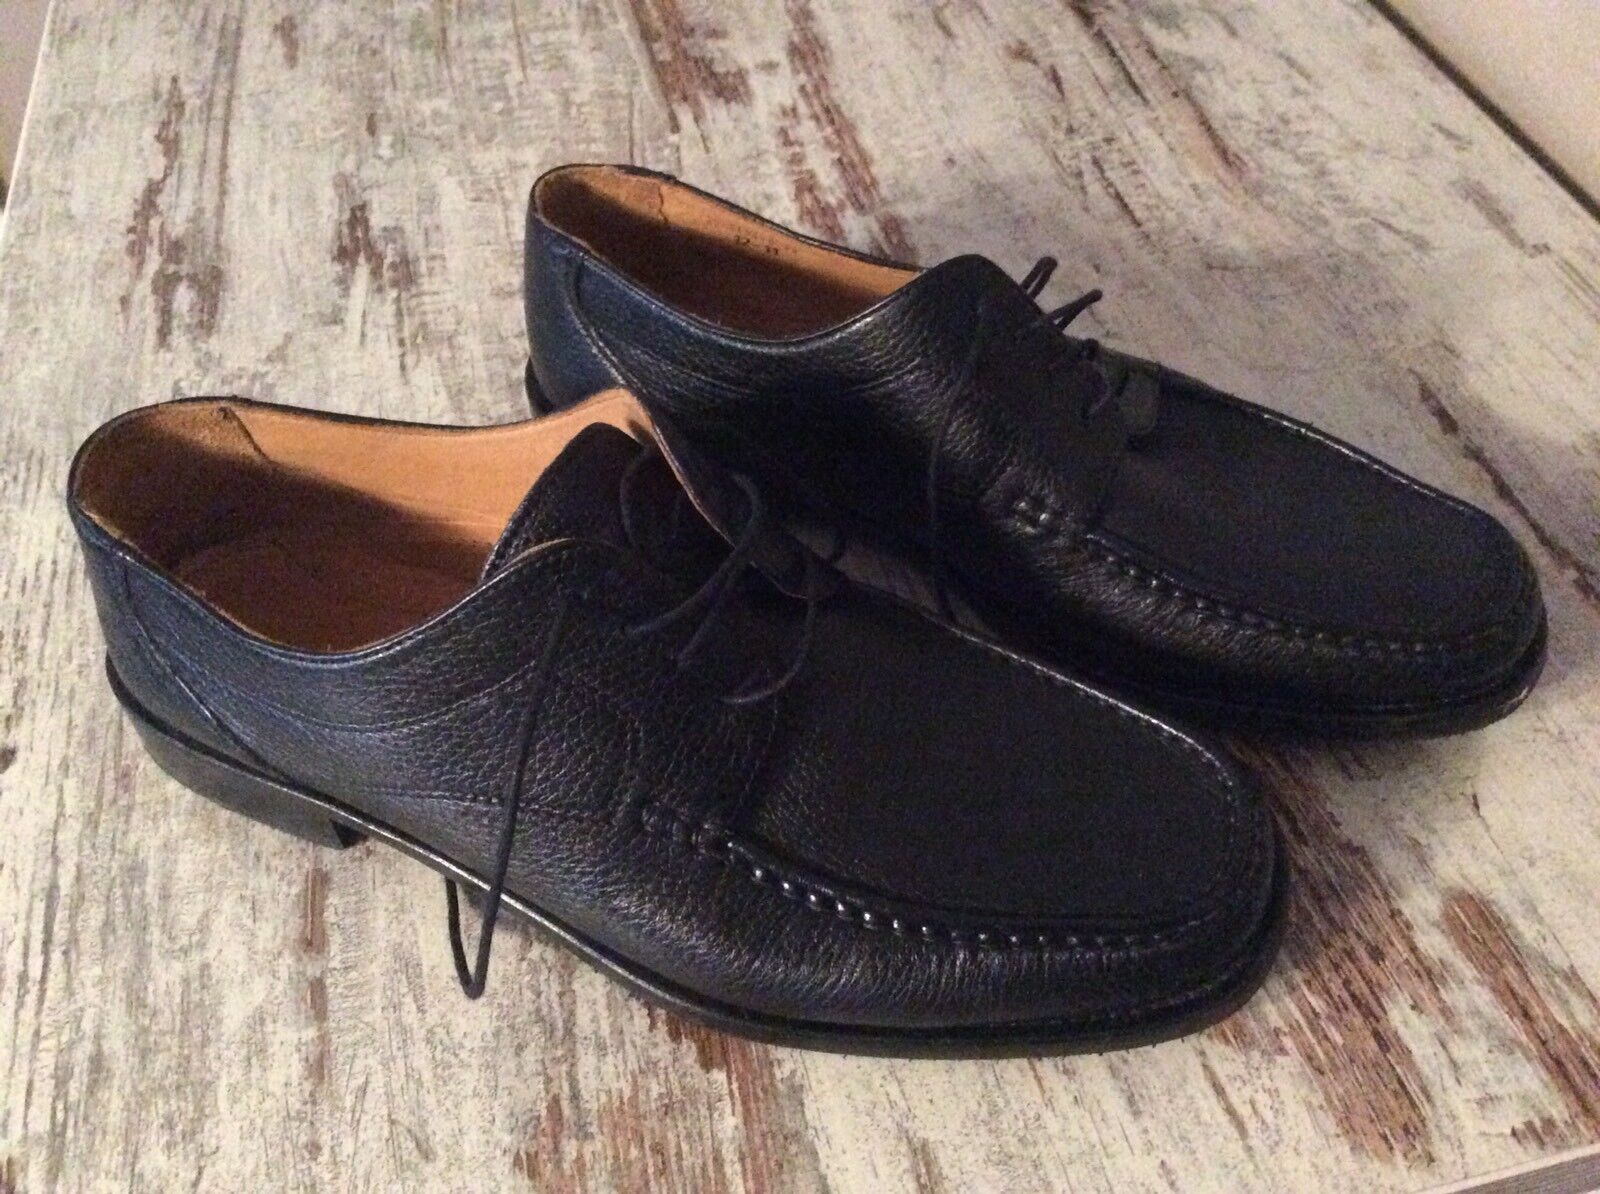 Pitti Buisness Shoes halbschuh Gr.45 TOP leder schwarz